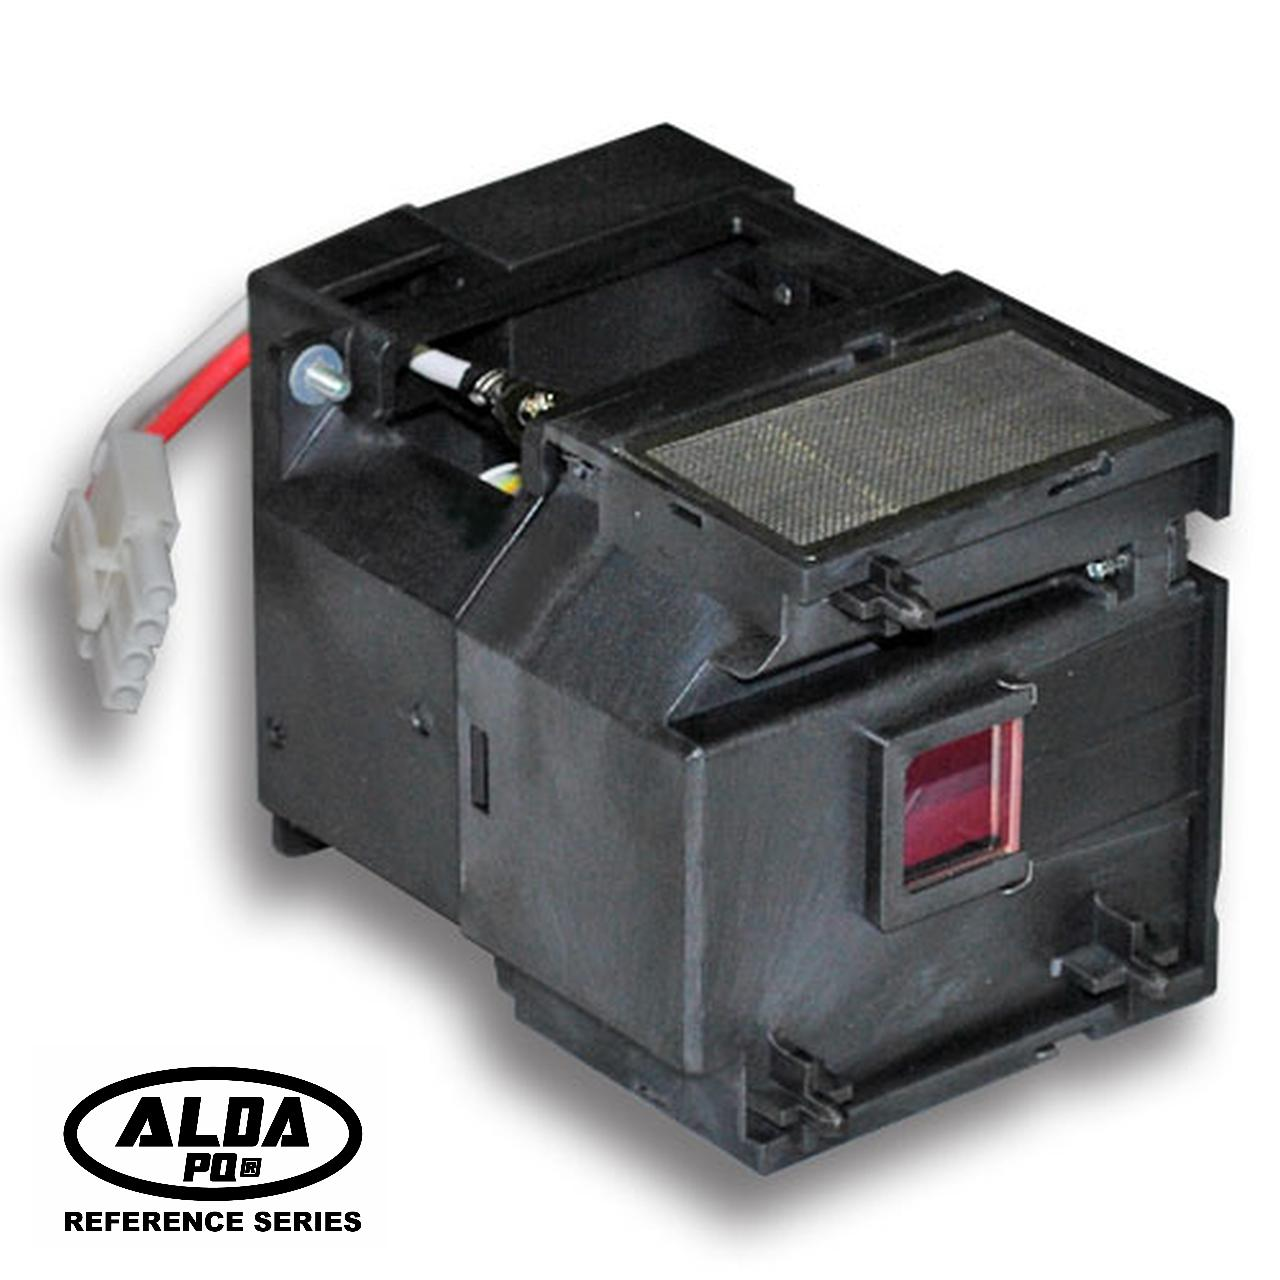 Alda Pq Reference Lamp For Infocus Dq 3120 Projectors Projector Cus In116x With Housing